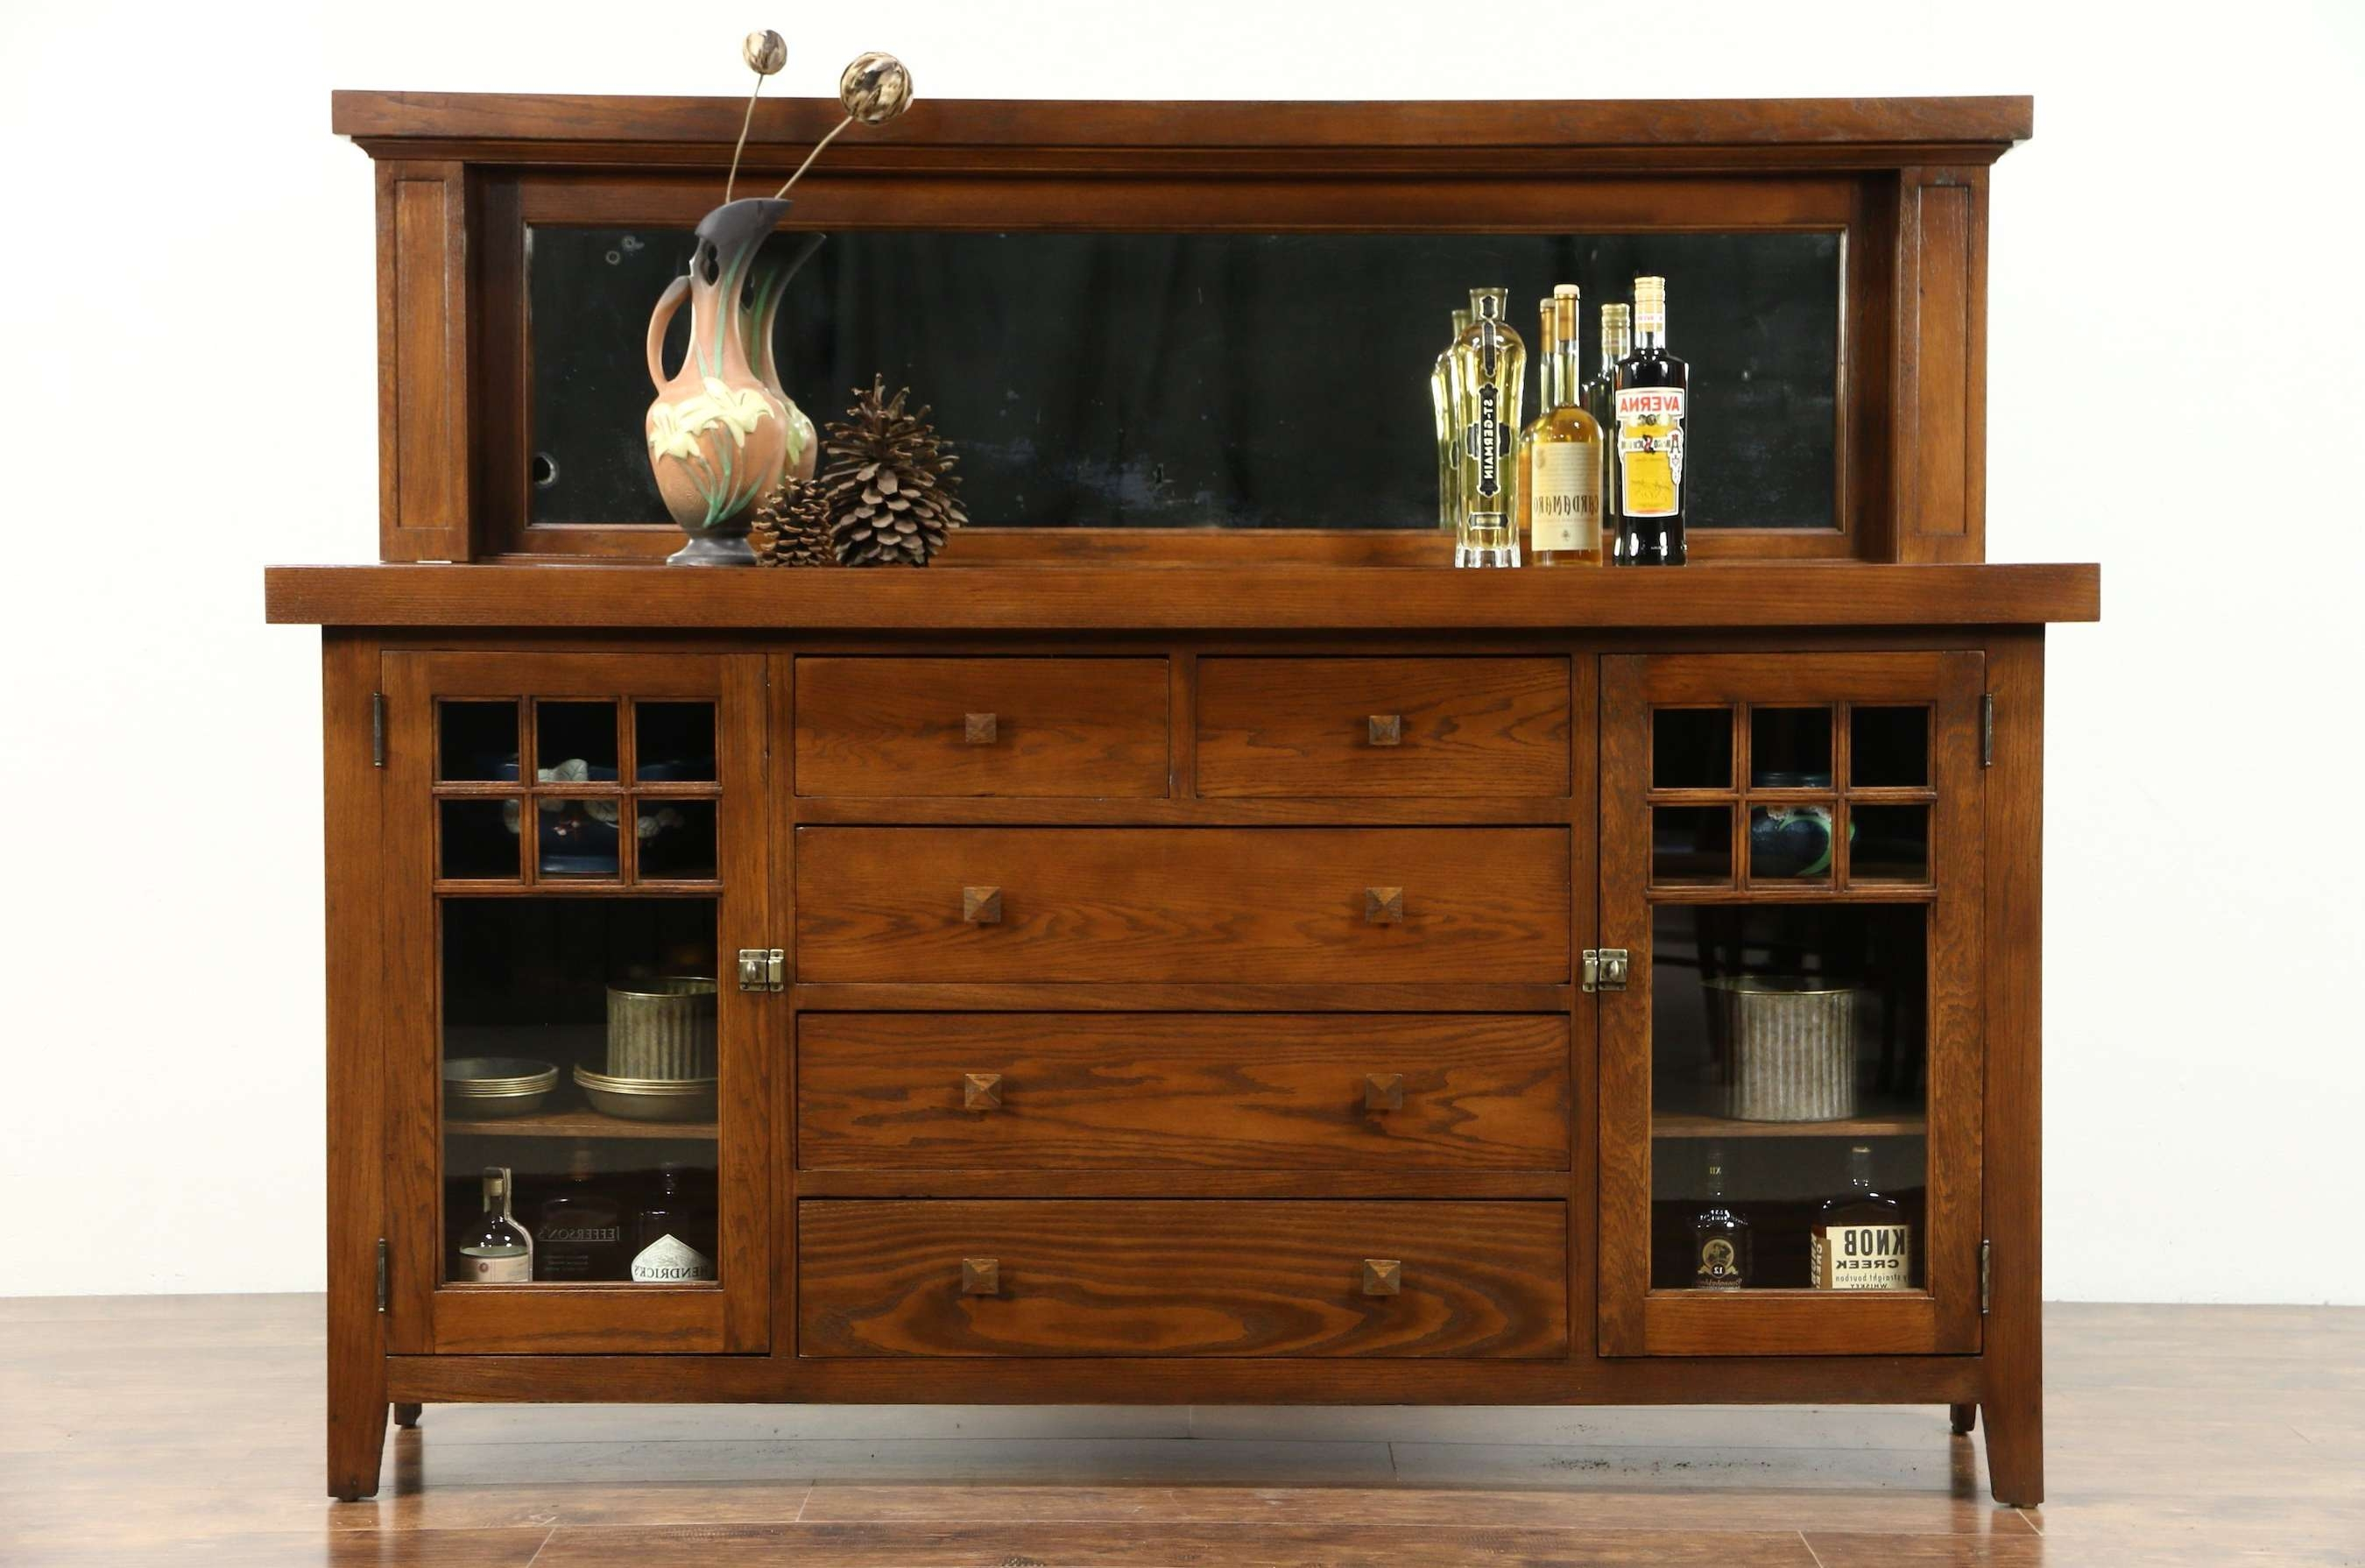 Sold – Arts & Crafts Mission Oak 1900 Antique Craftsman Sideboard Within Mission Sideboards (View 17 of 20)